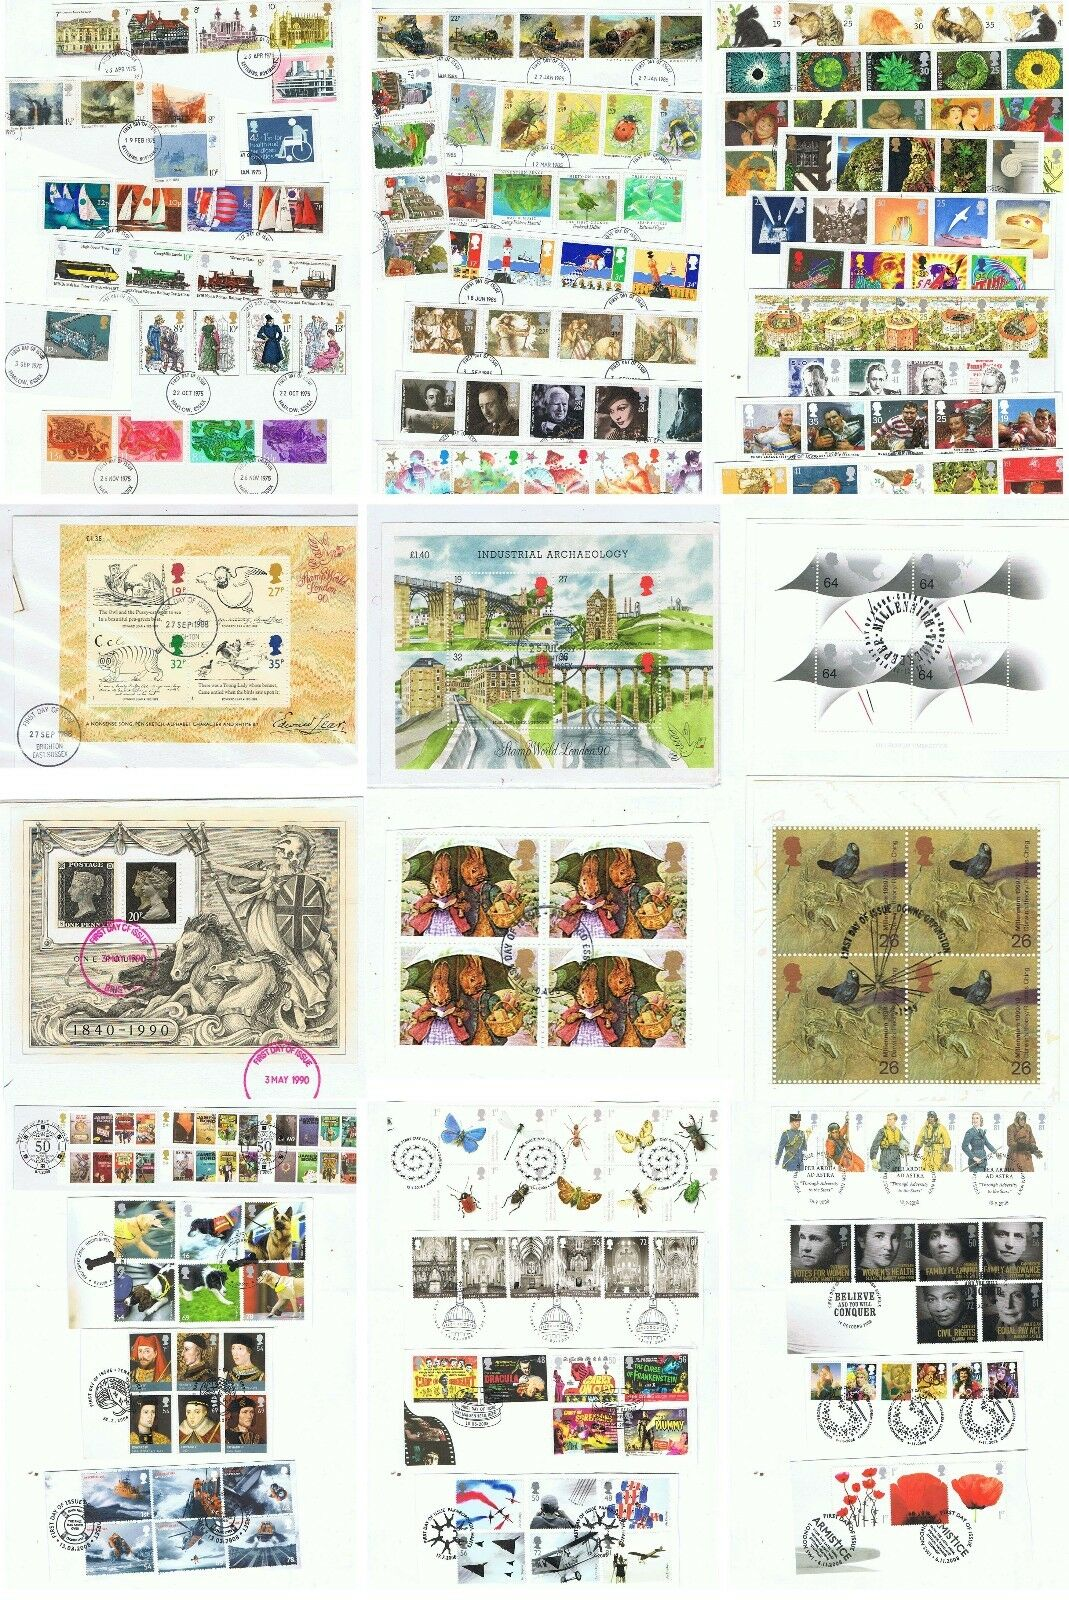 Decimal USED YEAR SETS 1971 - 2008 EX FDC M/S sold separately  DISCOUNTS to 50%